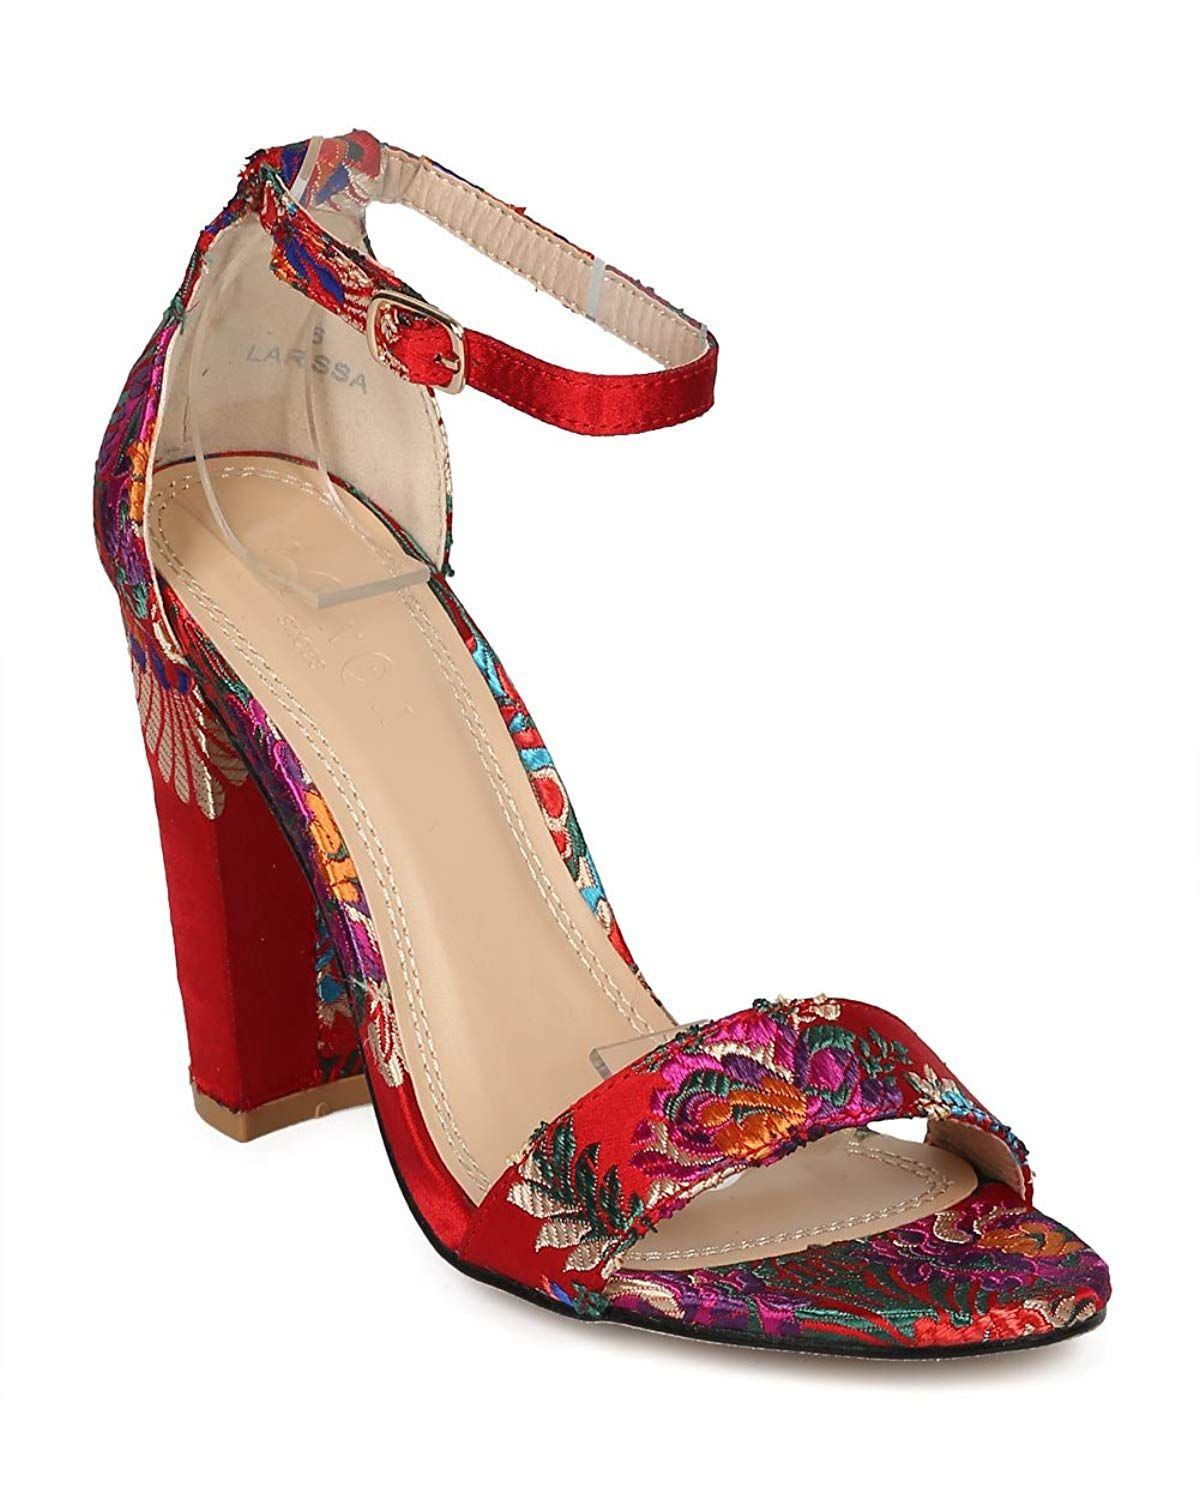 f75acaf5b0c0 Alrisco Women Floral Block Heel Sandal - Brocade Chunky Heel - Open Toe  Embroidered Dressy Sandal